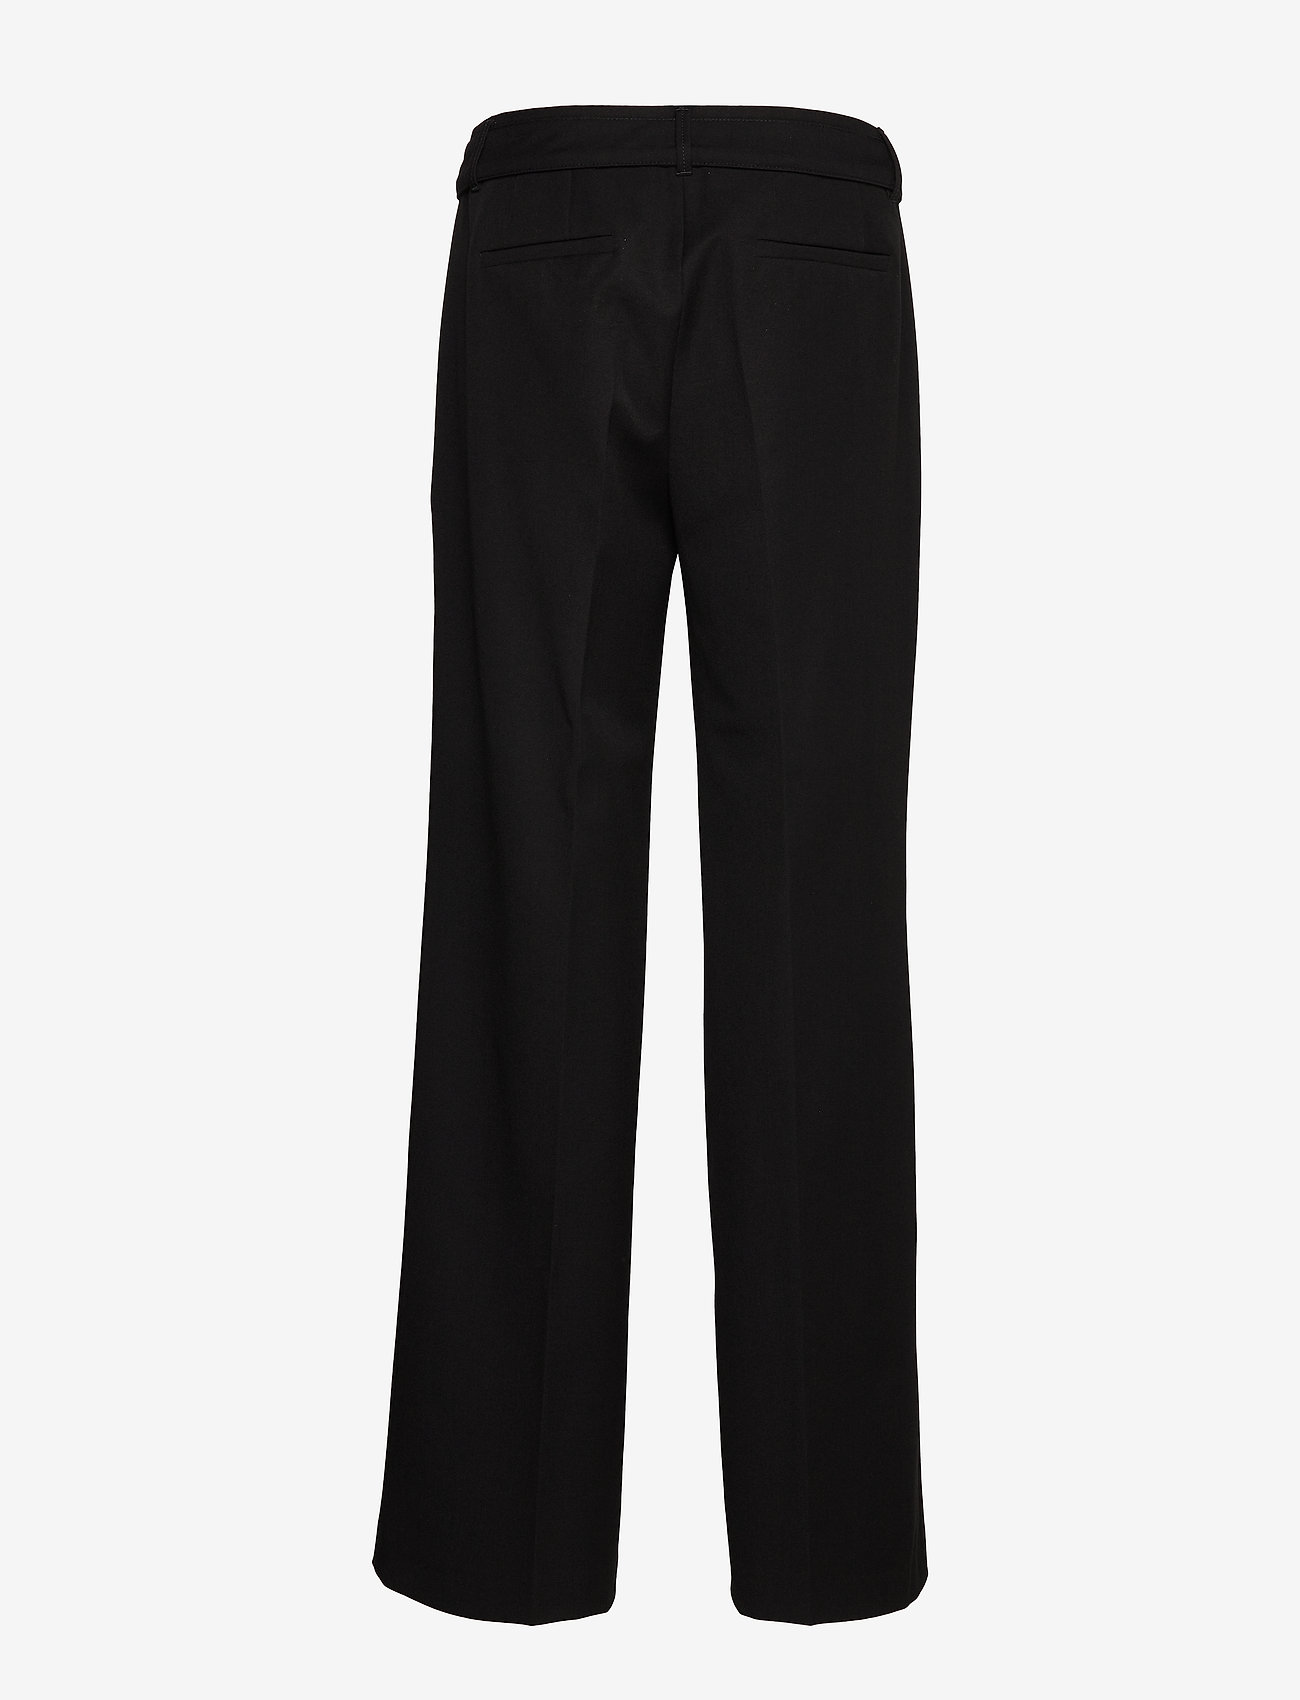 Pants Classic 1/1 Length (Black) - Betty Barclay grKCzX